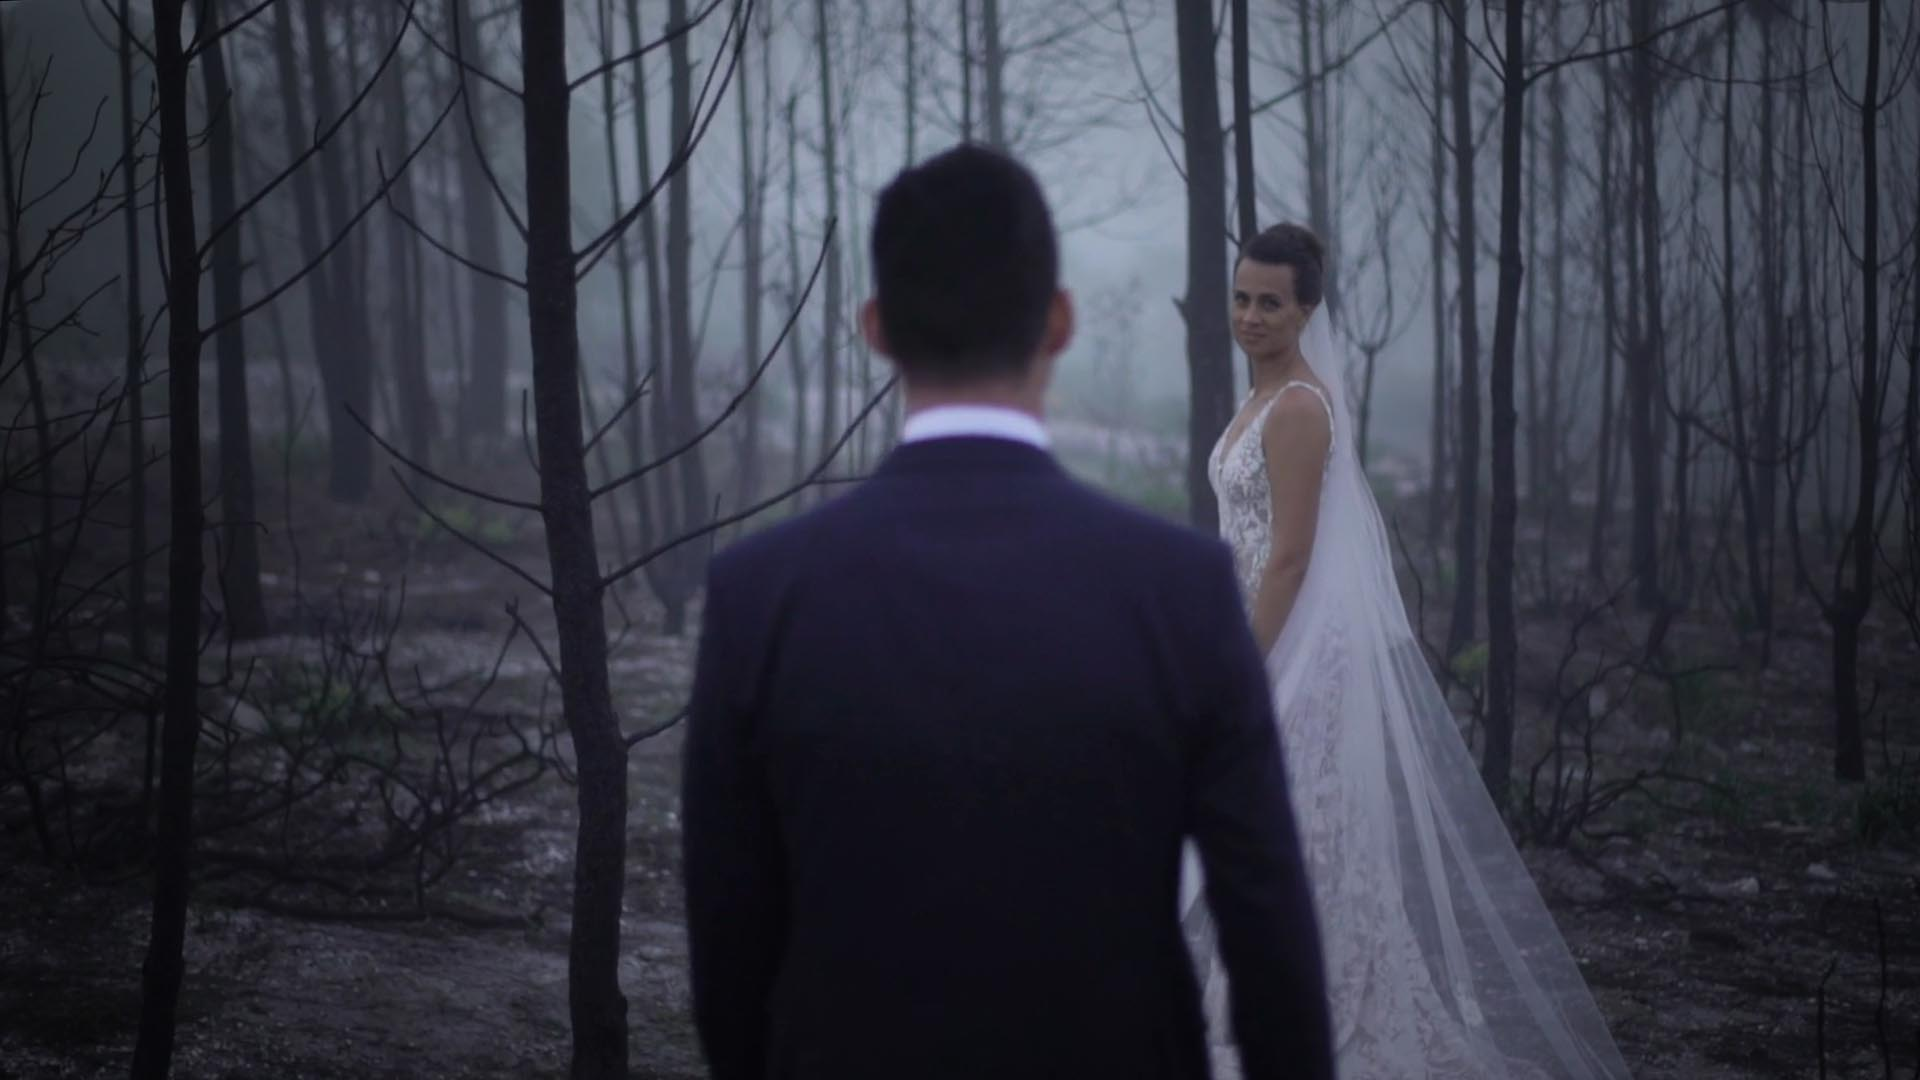 Serron & Saar Wedding Video Woods | Epitome